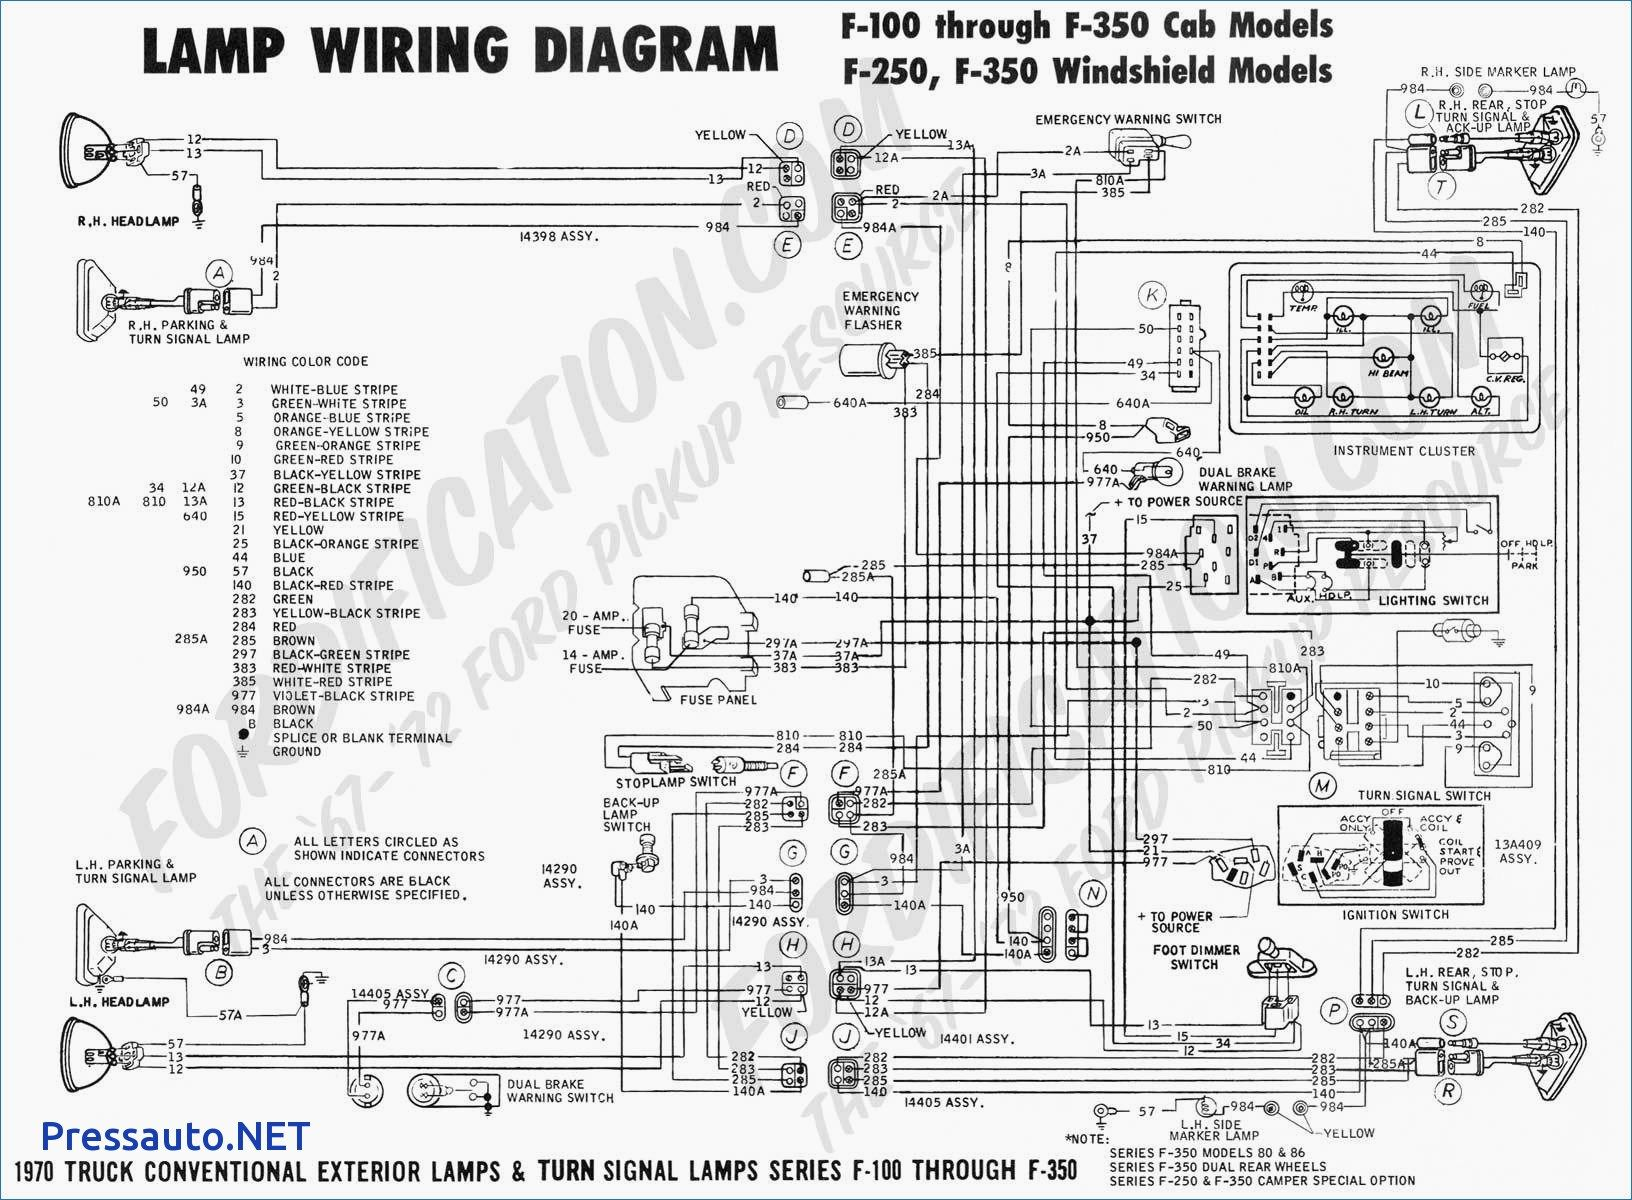 2002 F350 Turn Signal Wiring Diagram Diagrams Schematics Inside Ford F250 |  Trailer wiring diagram, Electrical diagram, Electrical wiring diagram | Ford F100 Turn Signal Wiring Diagrams |  | Pinterest